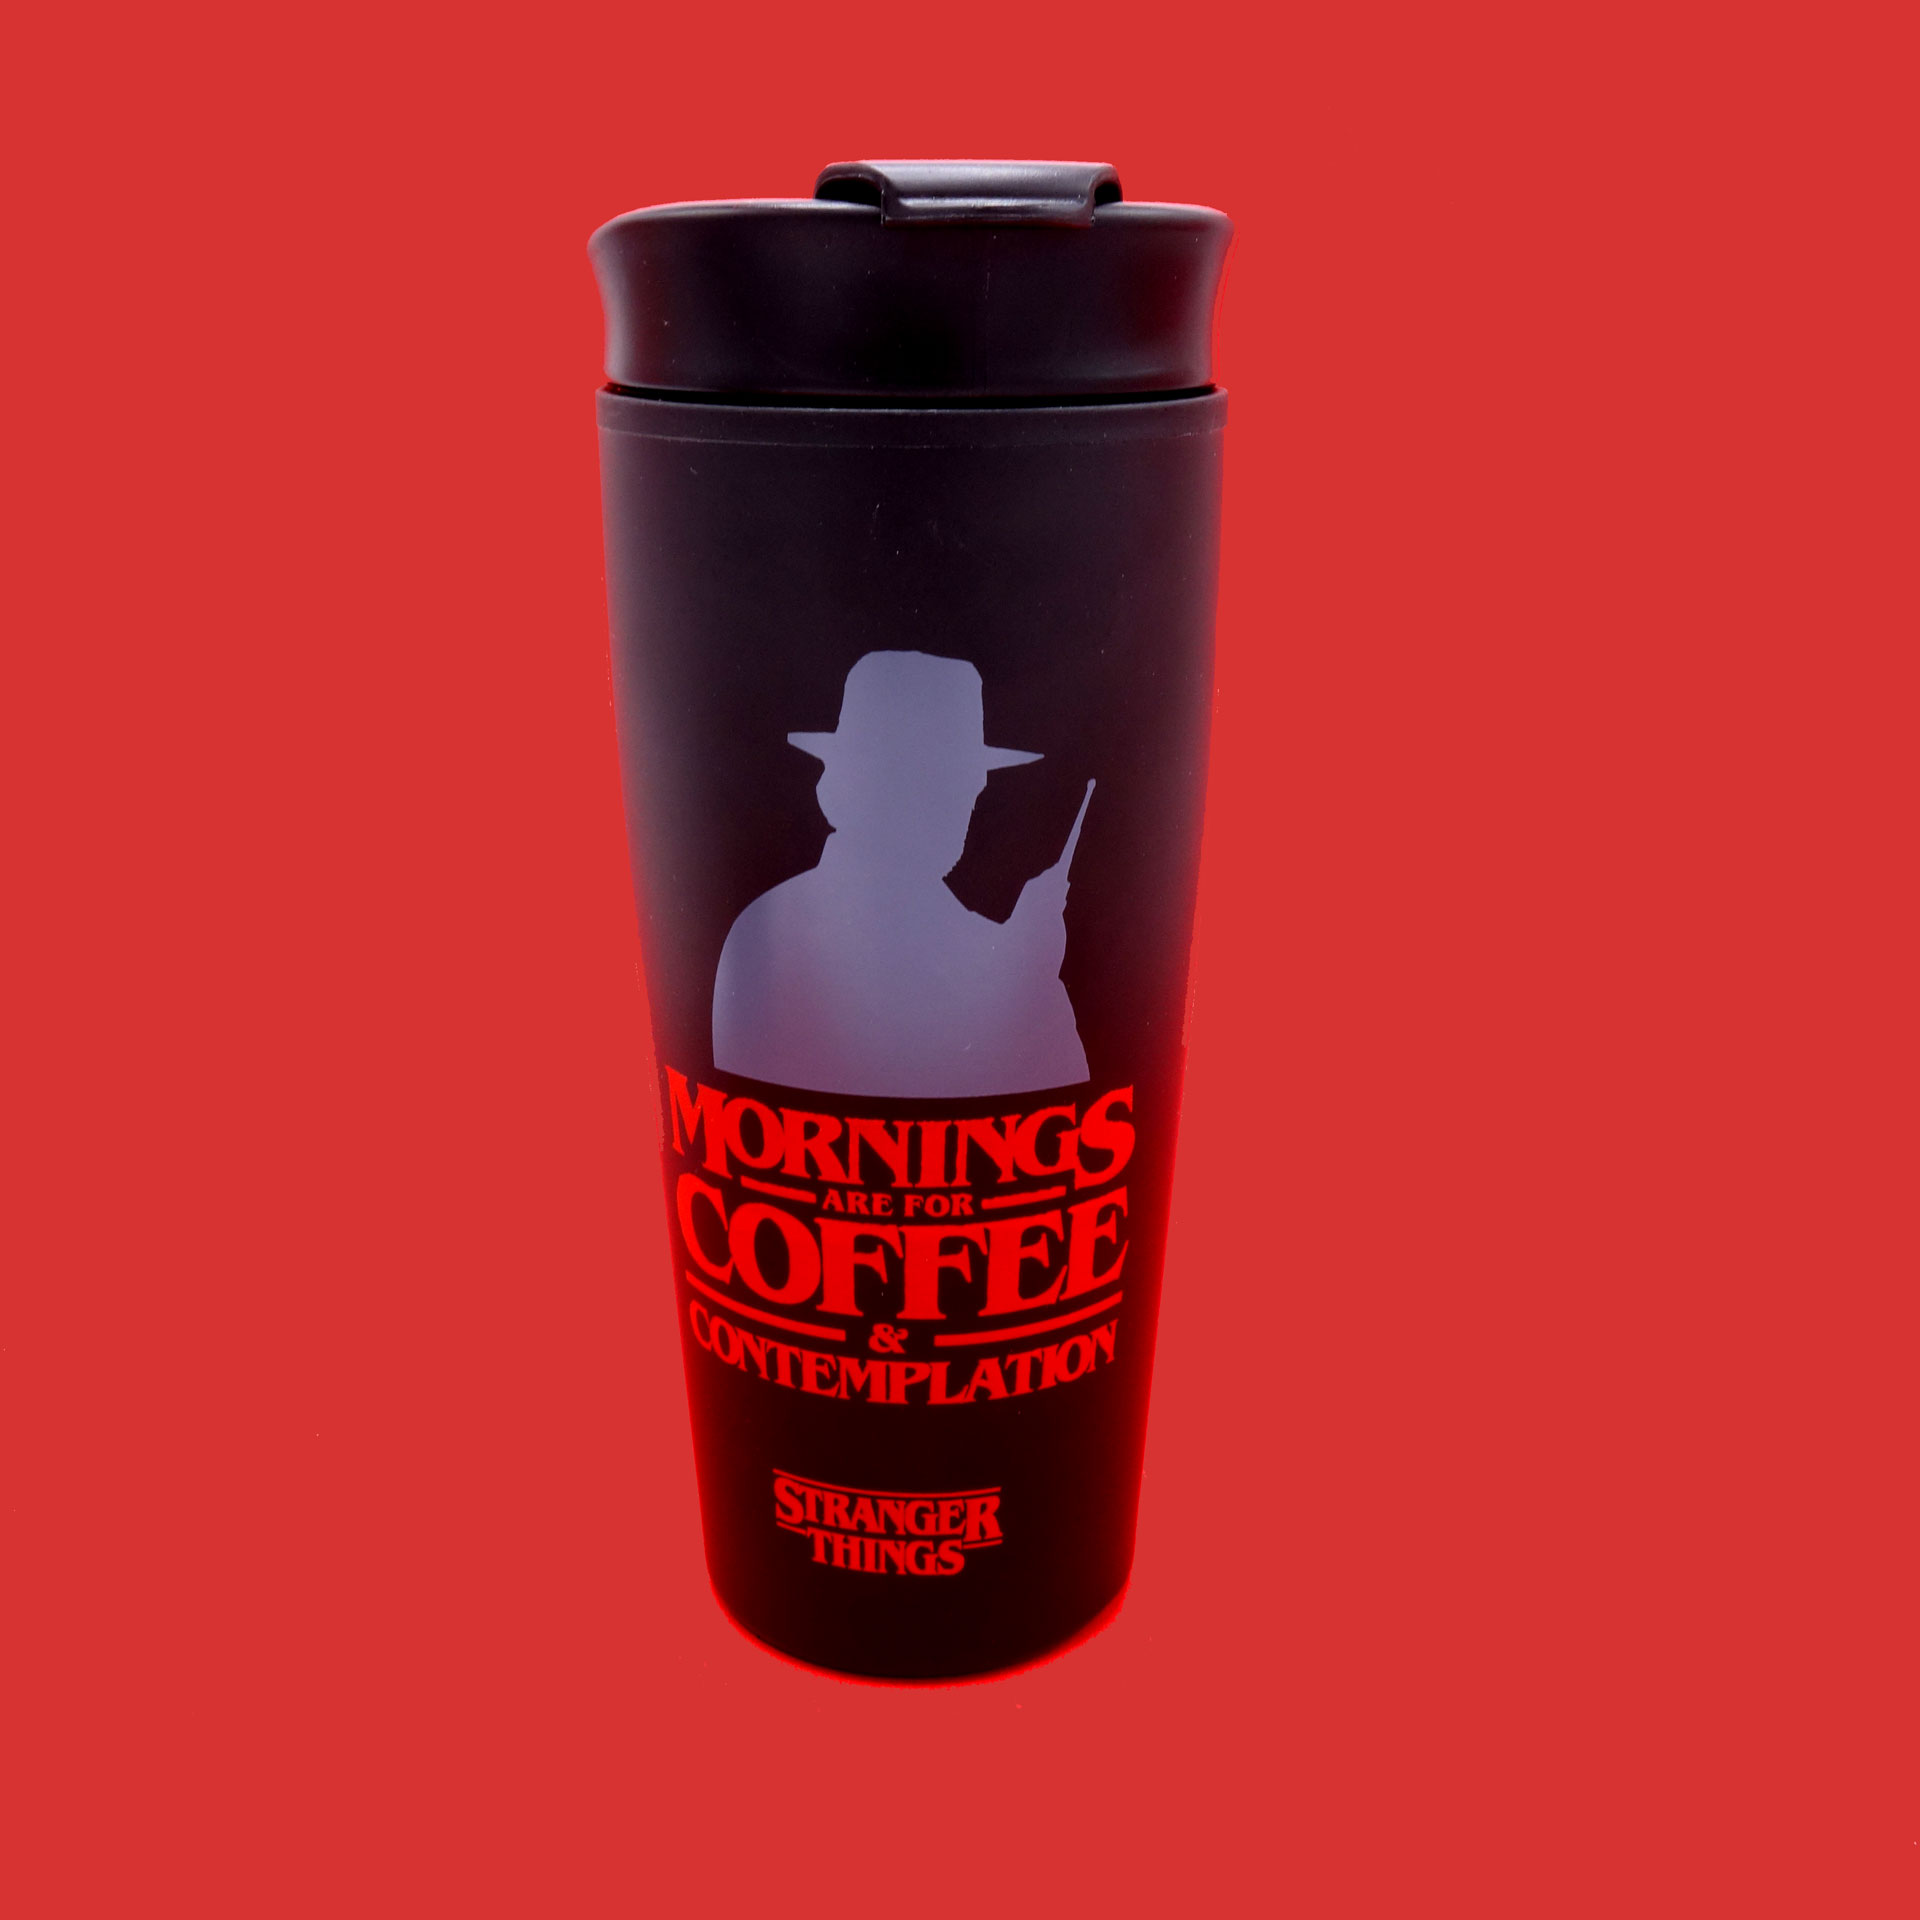 Stranger Things Coffee To Go Becher Coffee and Contemplation